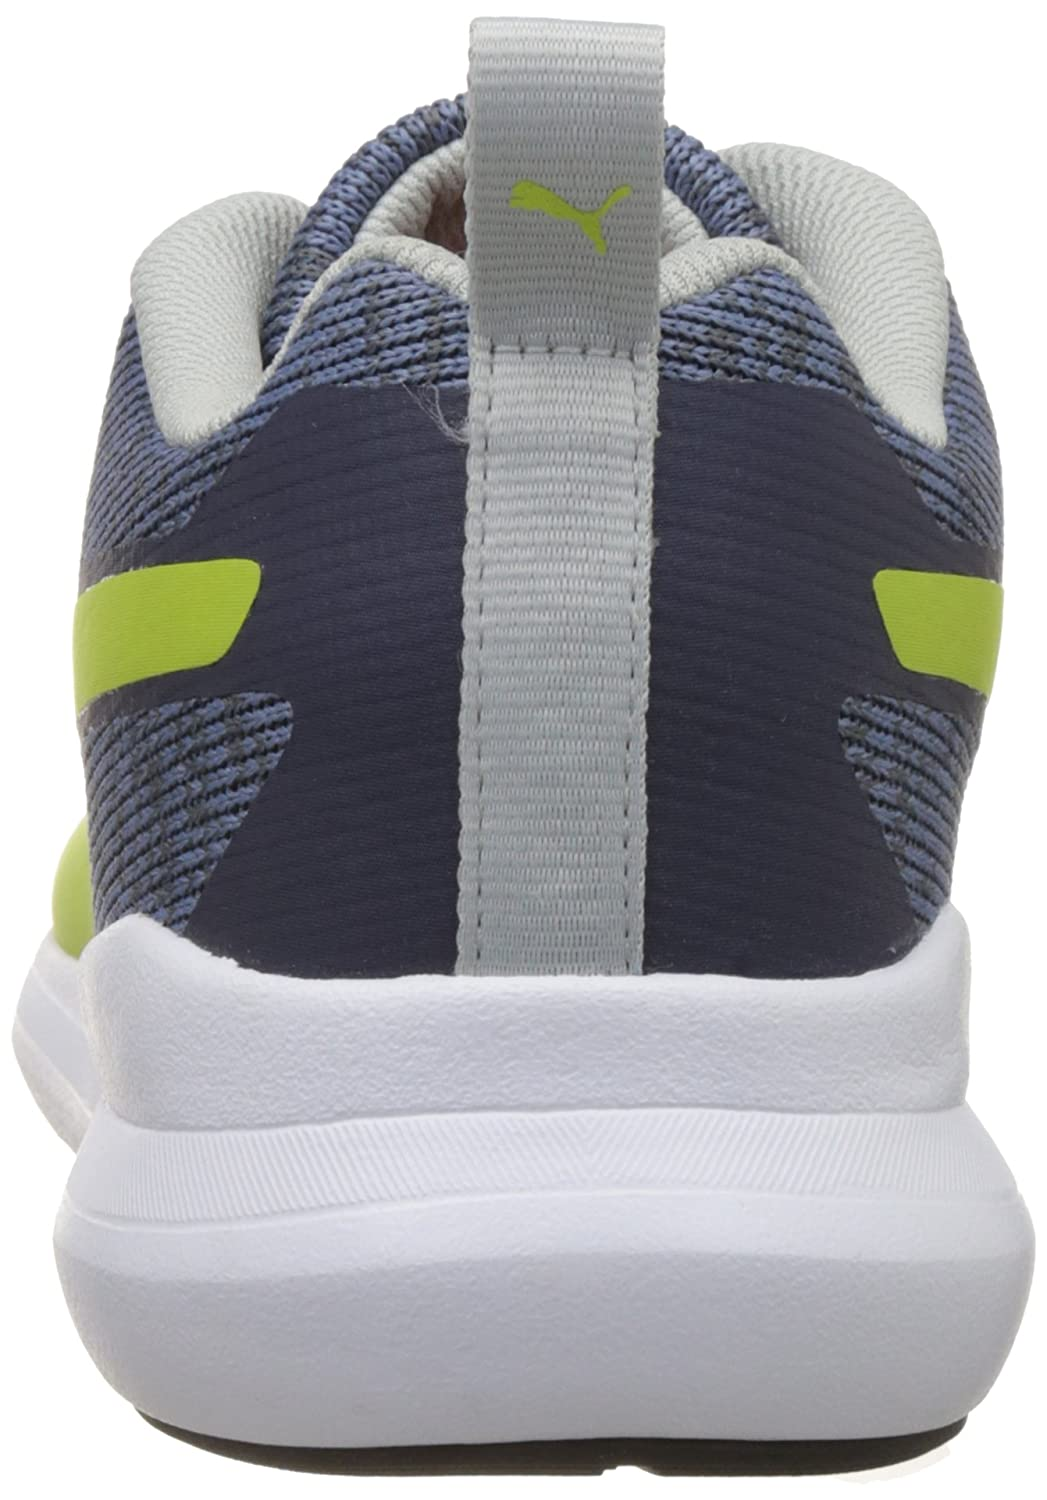 Puma Men s Styx Evo Idp Sneakers  Buy Online at Low Prices in India -  Amazon.in e1169151b